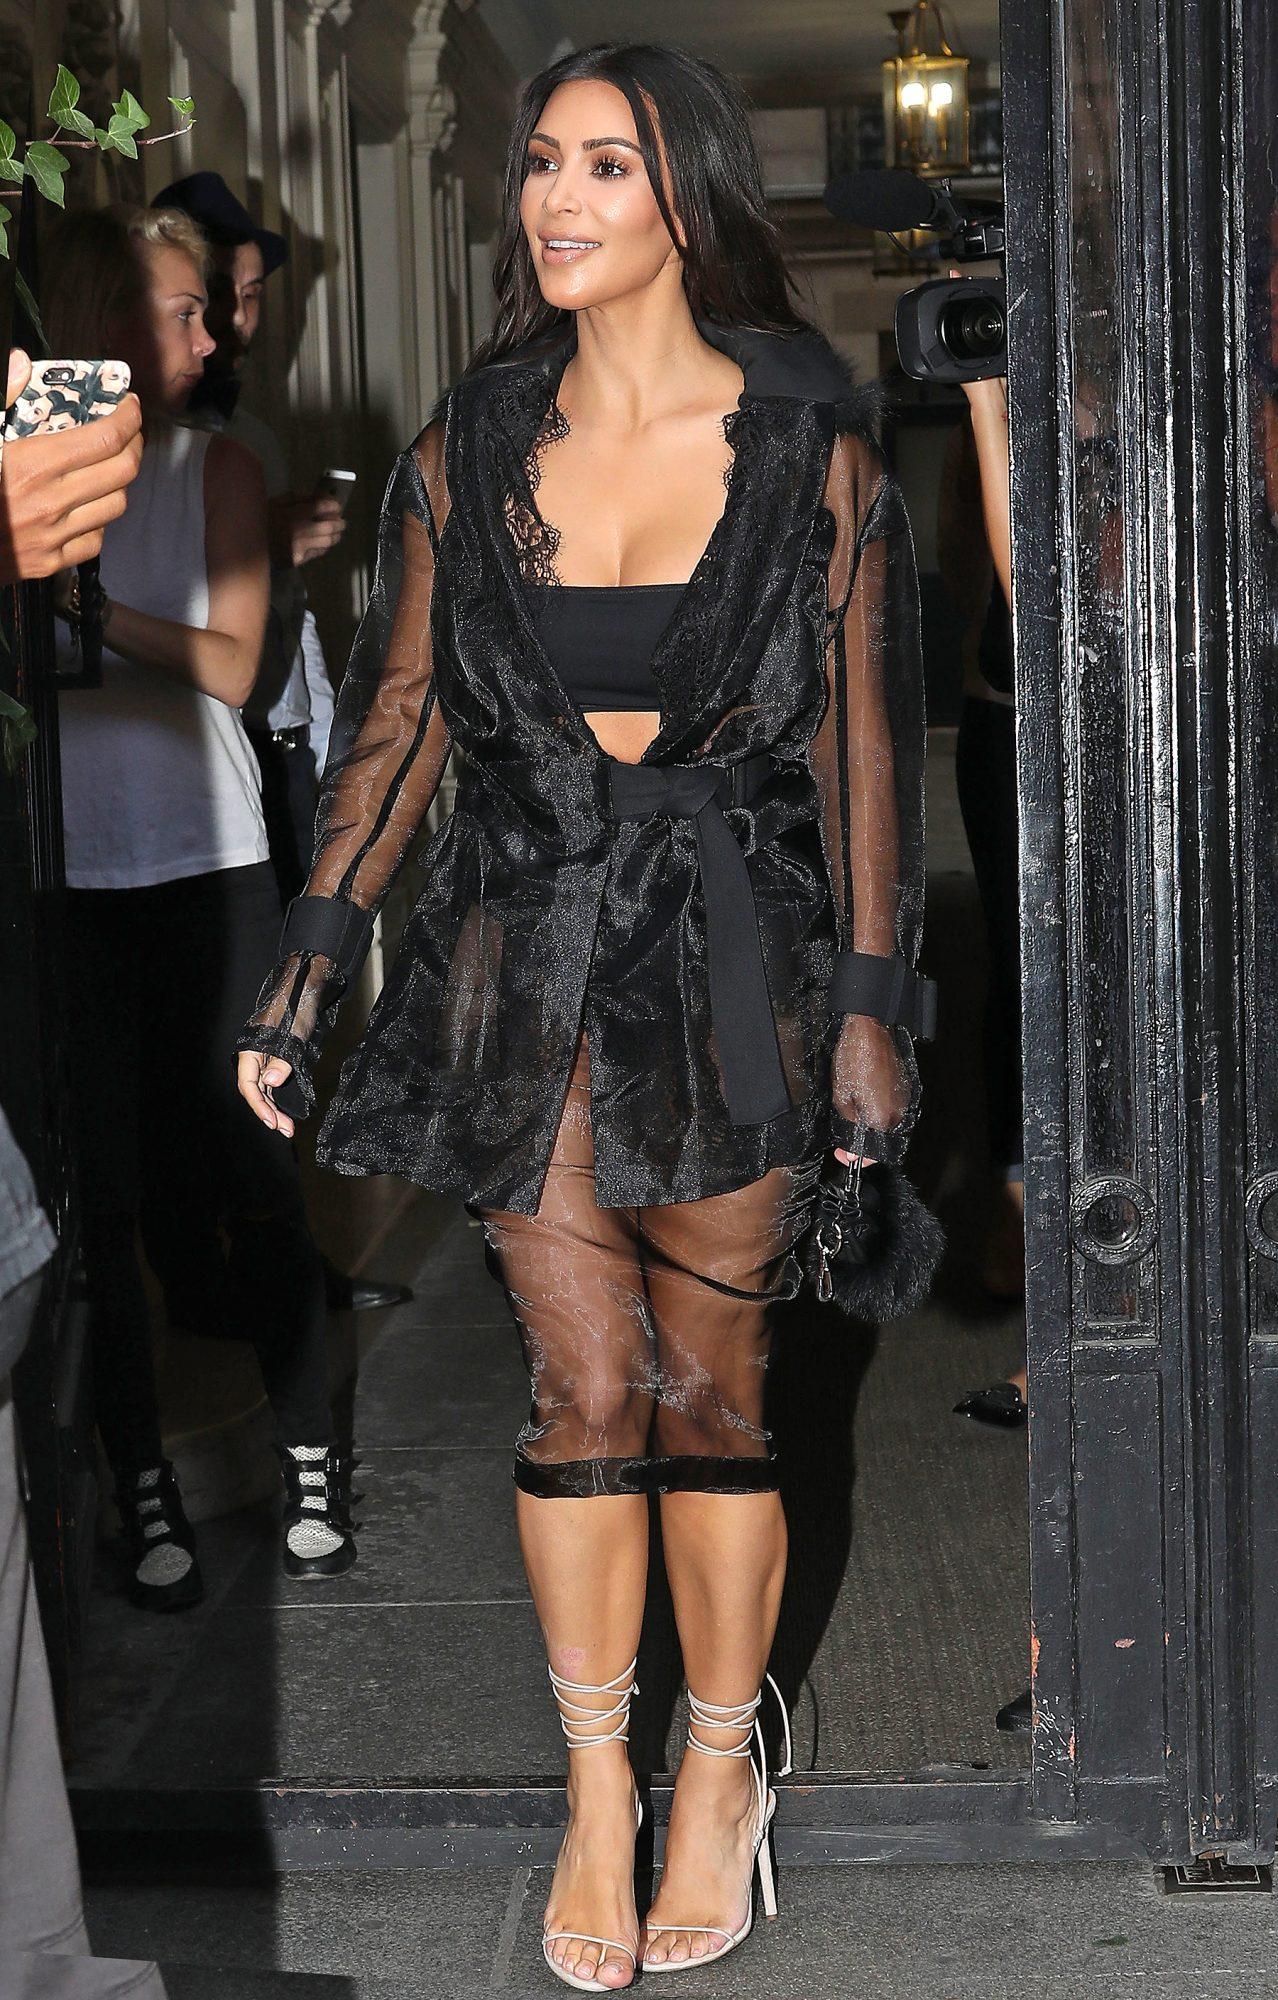 du corps PascalKim Kardashian arrive at Avenue restaurant Vitalii Sediuk tried to catch her but was neutralized by her bodyguard Pascal